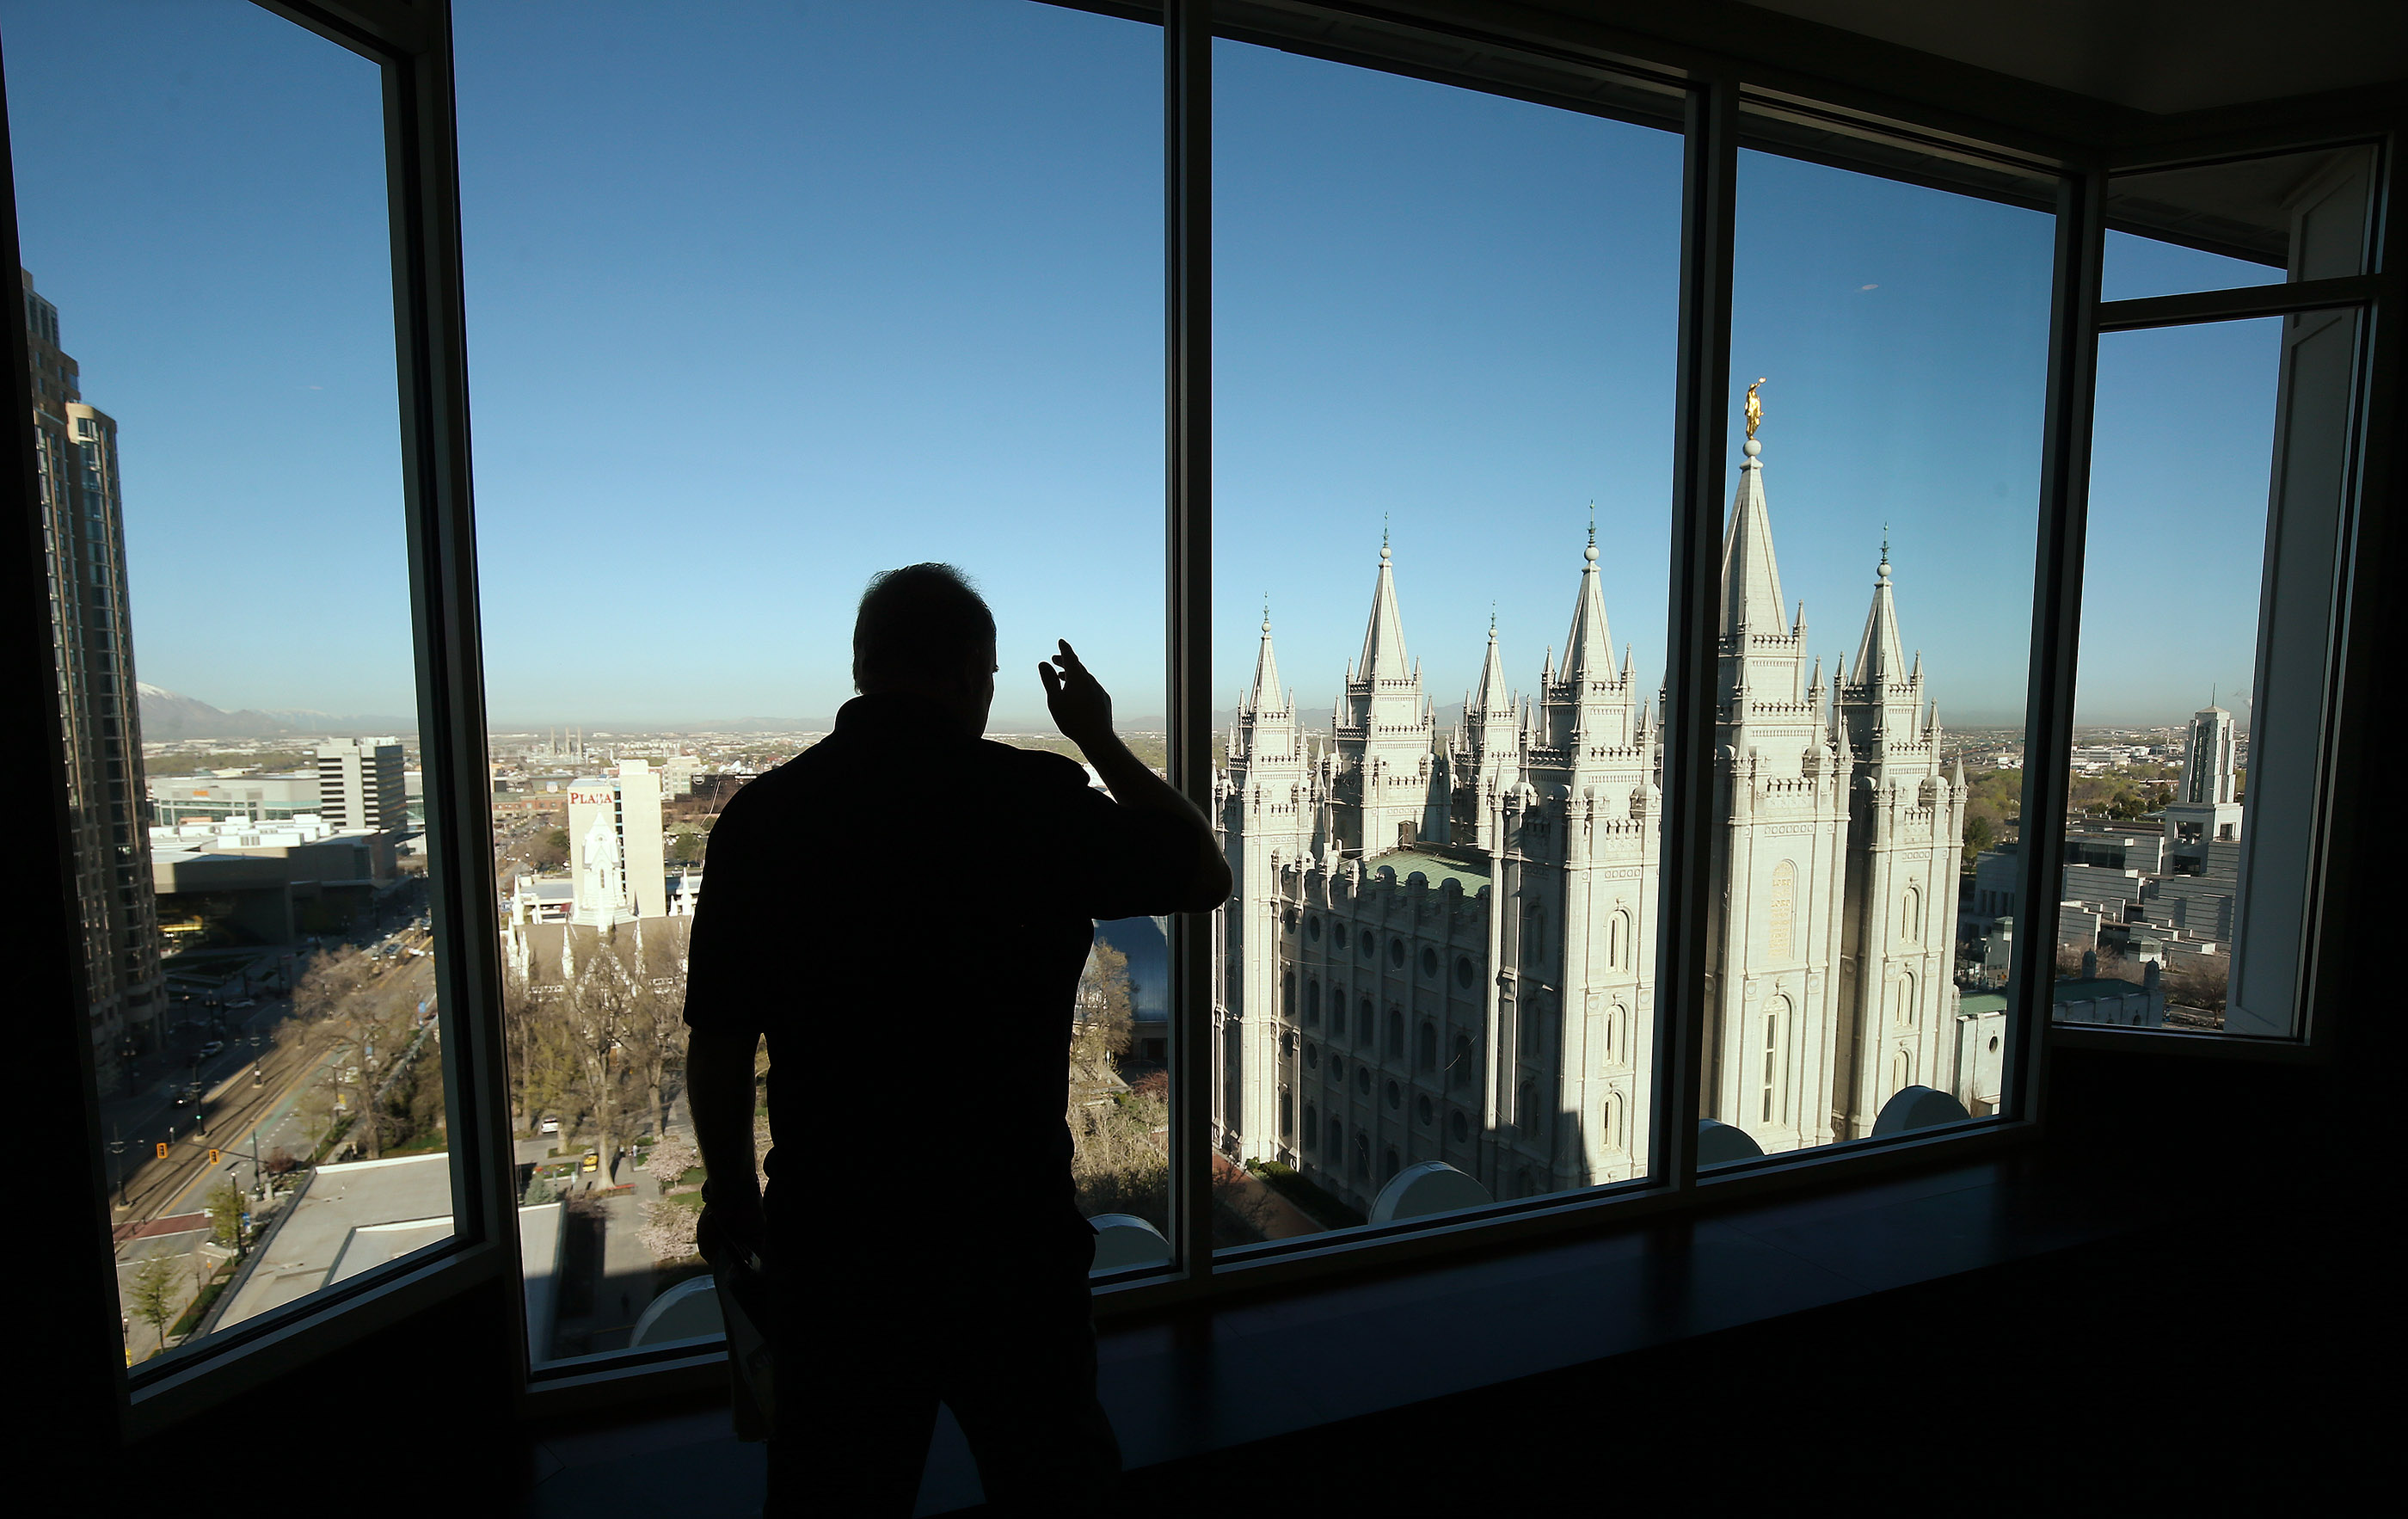 A person looks over the grounds of the Salt Lake Temple in Salt Lake City on Friday, April 19, 2019. Leadership of The Church of Jesus Christ of Latter-day Saints announced renovations to the Salt Lake Temple and changes to the temple grounds and Temple Square.